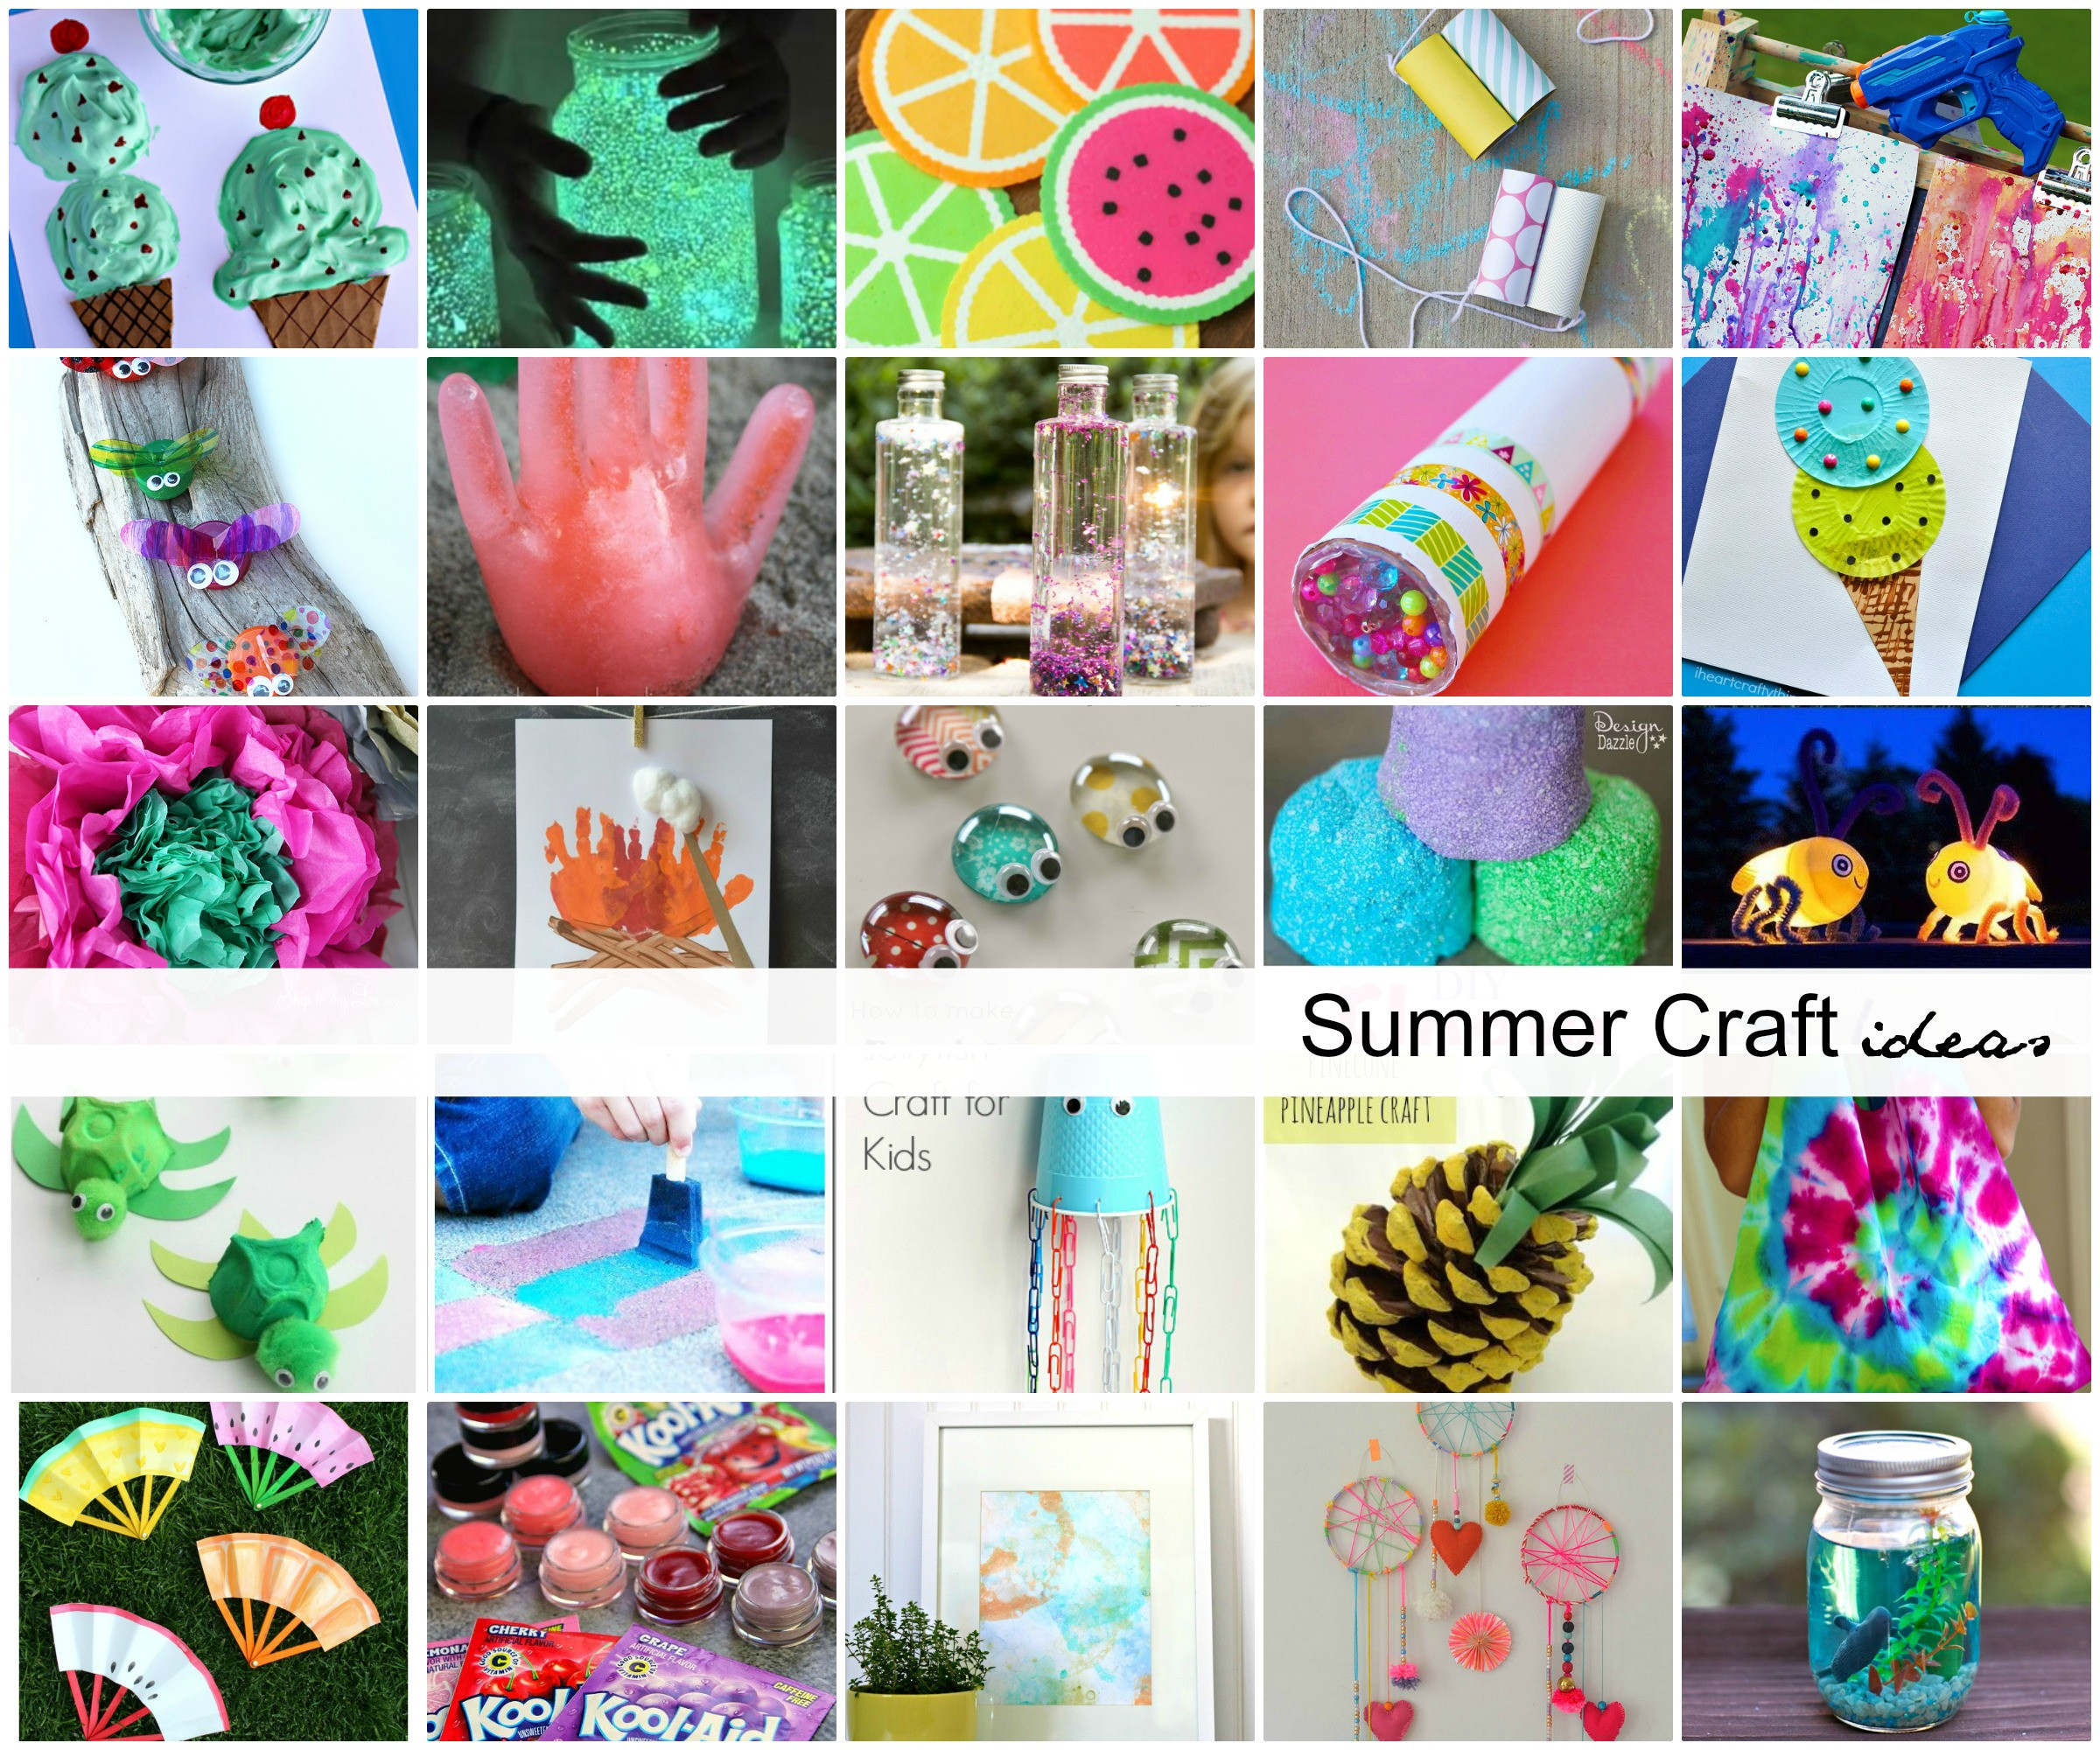 Best ideas about Craft Ideas Kids . Save or Pin Summer Craft Ideas for Kids The Idea Room Now.